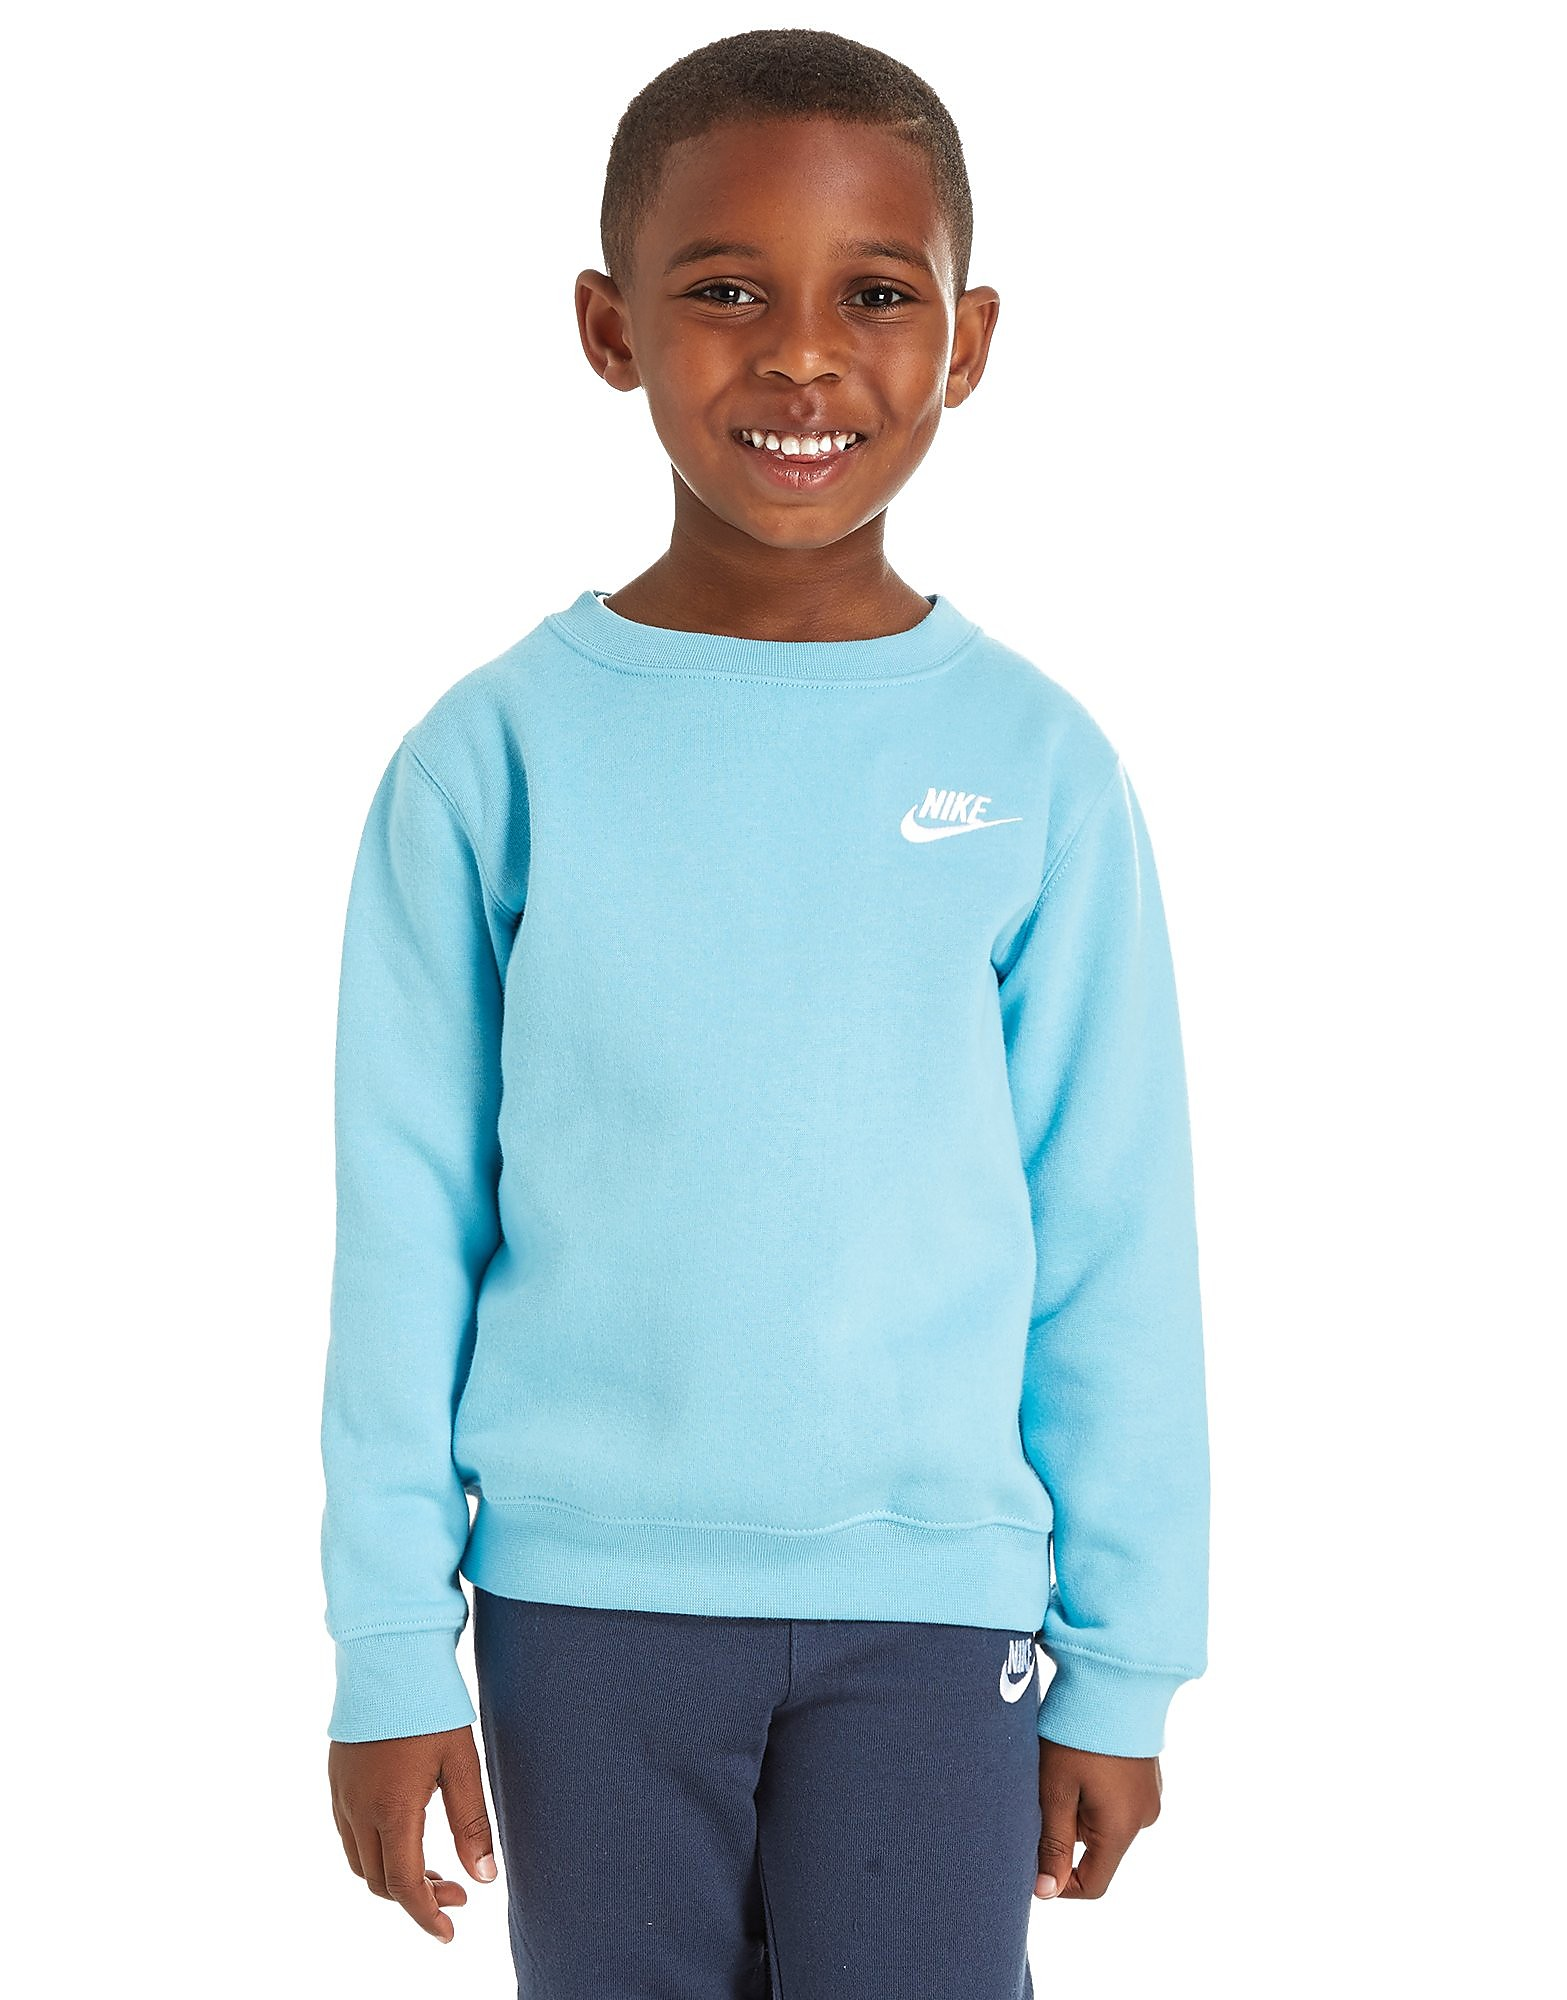 Nike Crew Neck Sweatshirt Children